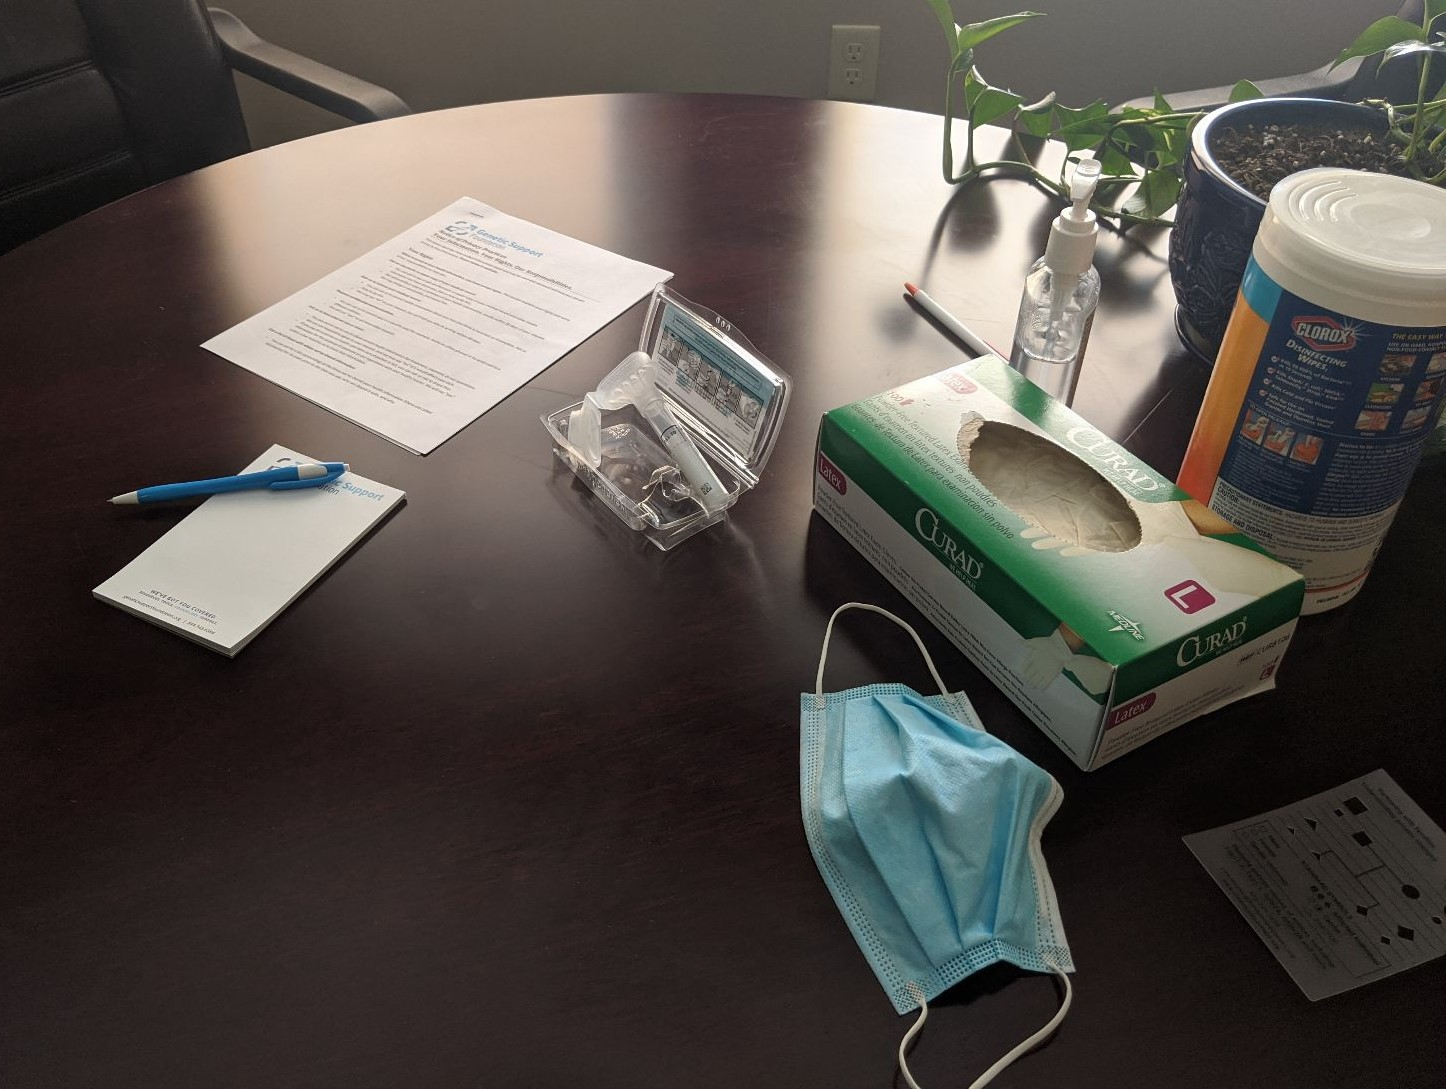 A mask, gloves, and sanitizer sit on a table for gentic testing and genetic counseling during Covid-19.